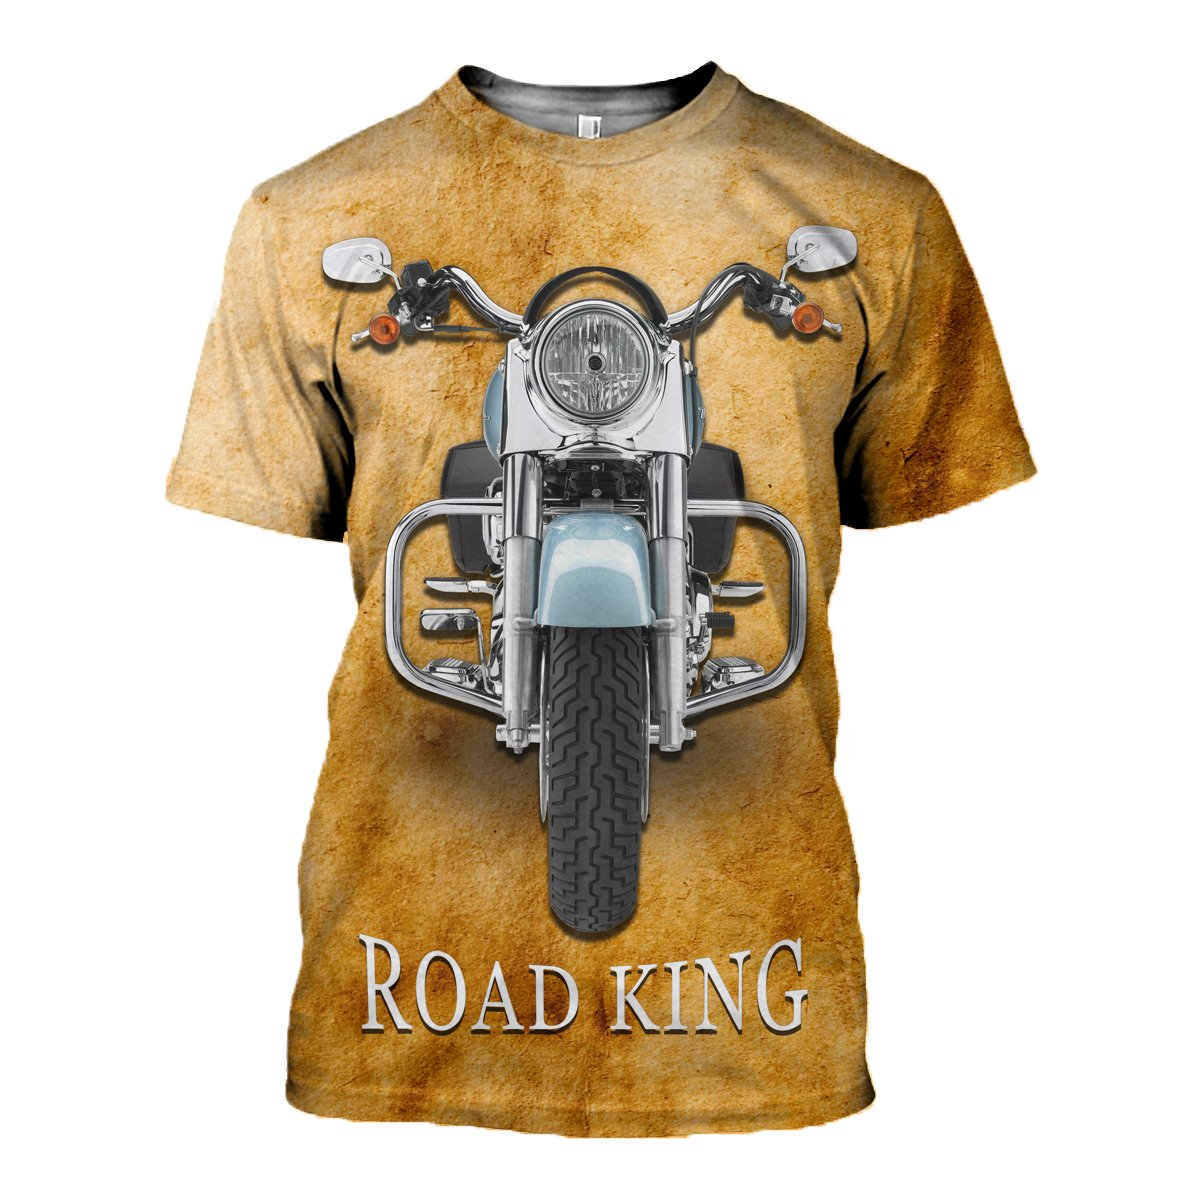 3D All Over Printed Harley Motorcycle Shirts and Shorts